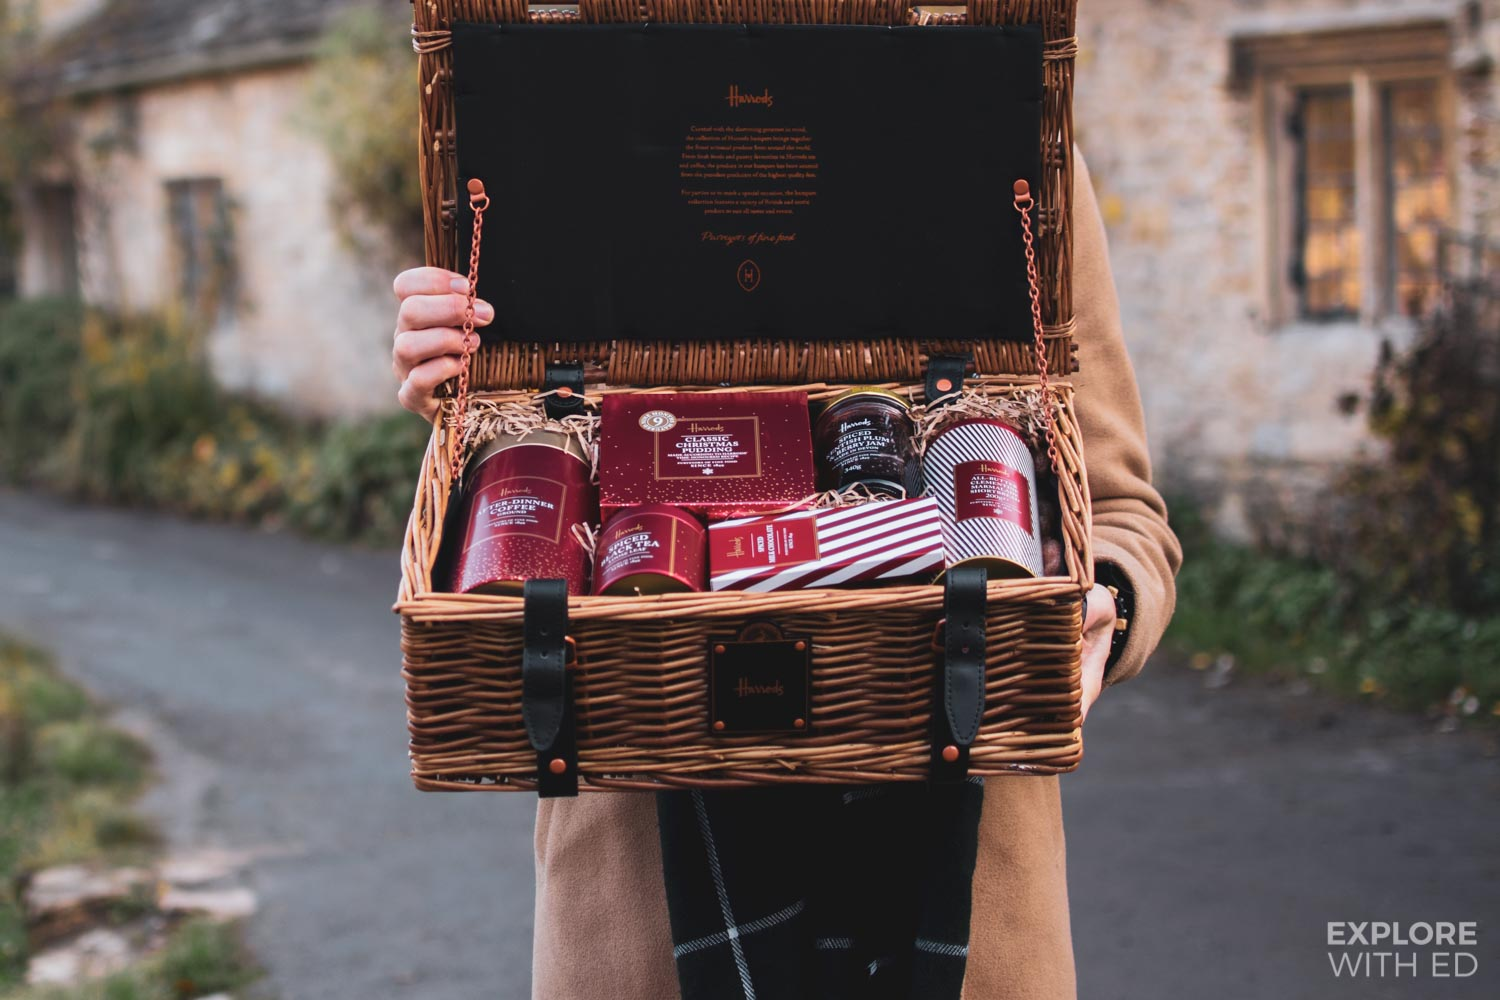 Inside The Chelsea Christmas Hamper box by Harrods